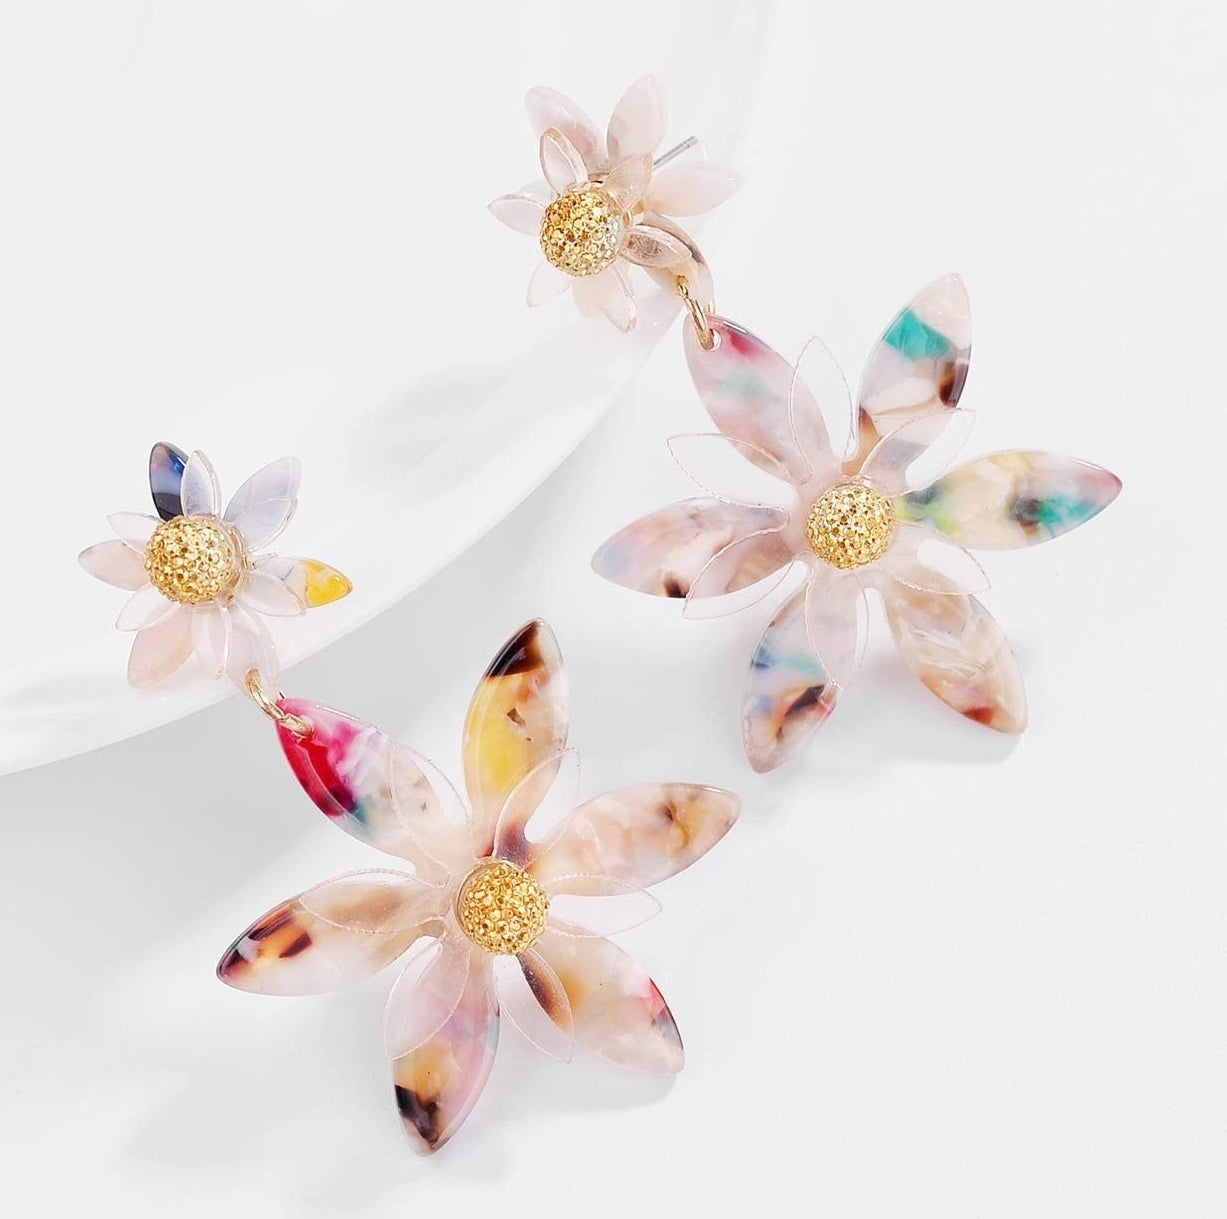 The multicolored drop earrings, each with a small and large flower with a gold center